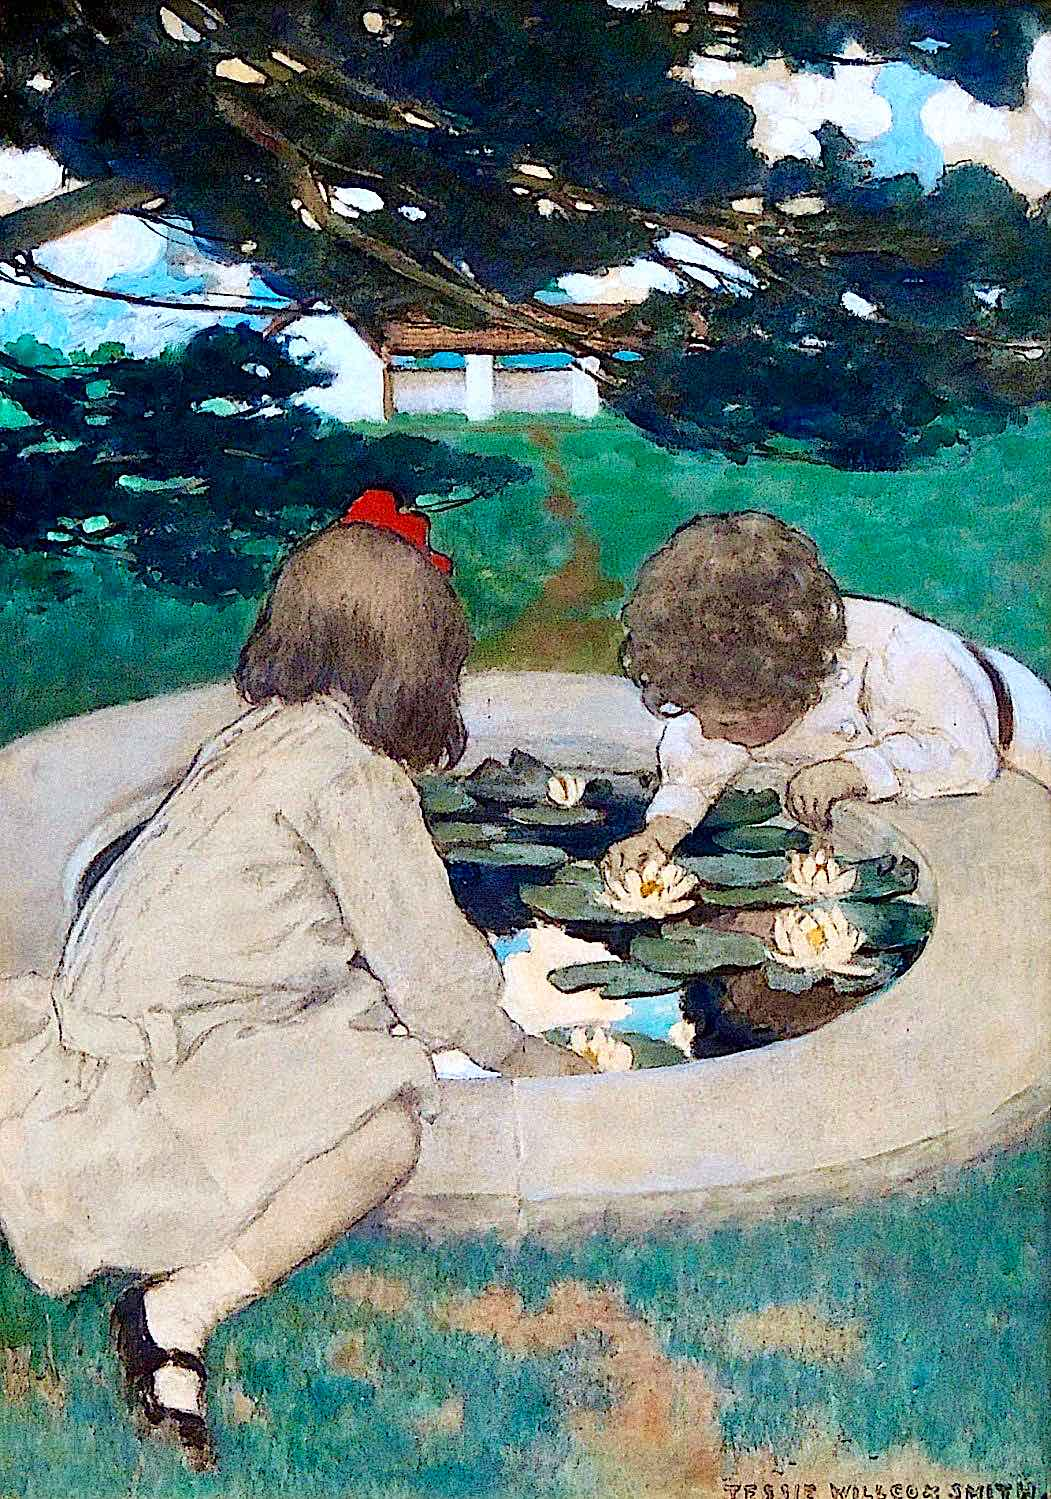 Jessie Wilcox Smith, two children playing with a small lilly pond